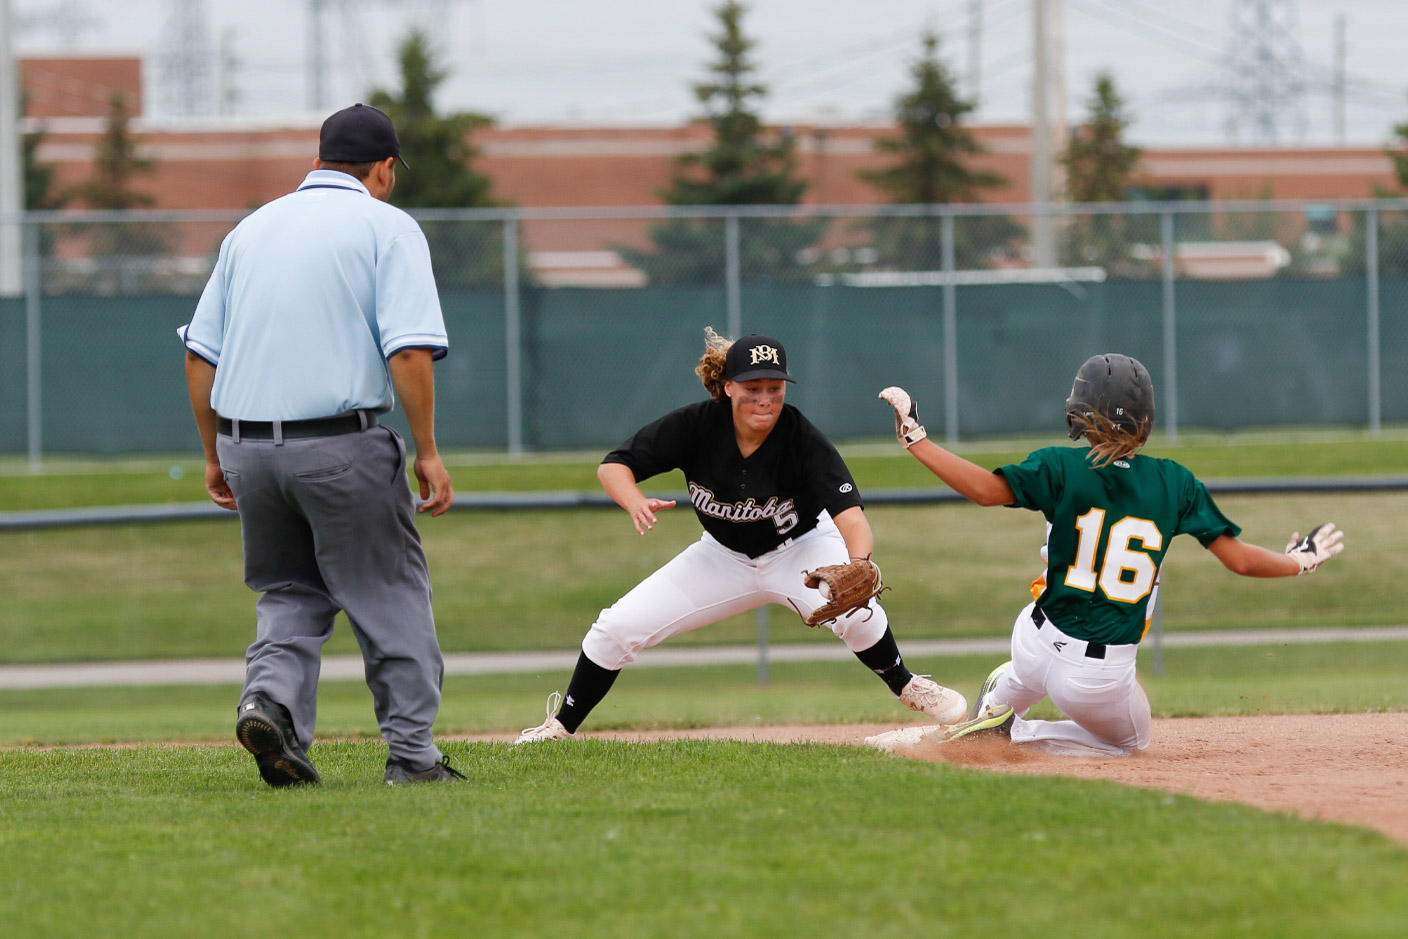 Baseball Canada Championships: Walk-offs, night games, and more highlight Day 2